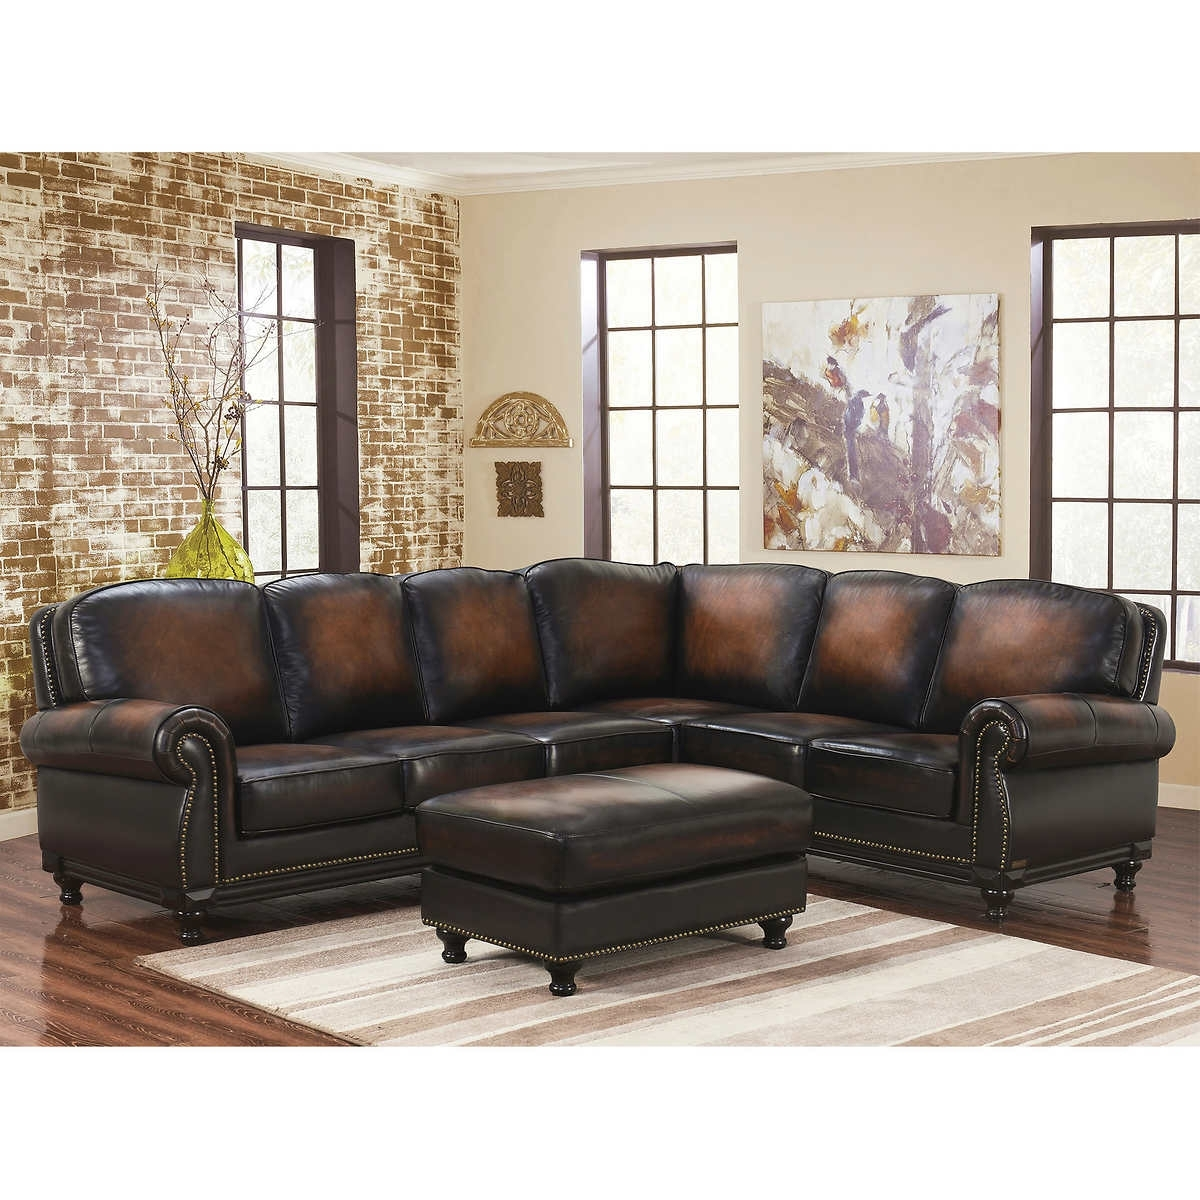 Inspirational Leather Sectional Sofa With Recliner 36 For Sofas And Regarding Sectional Sofas With Recliners Leather (View 7 of 10)